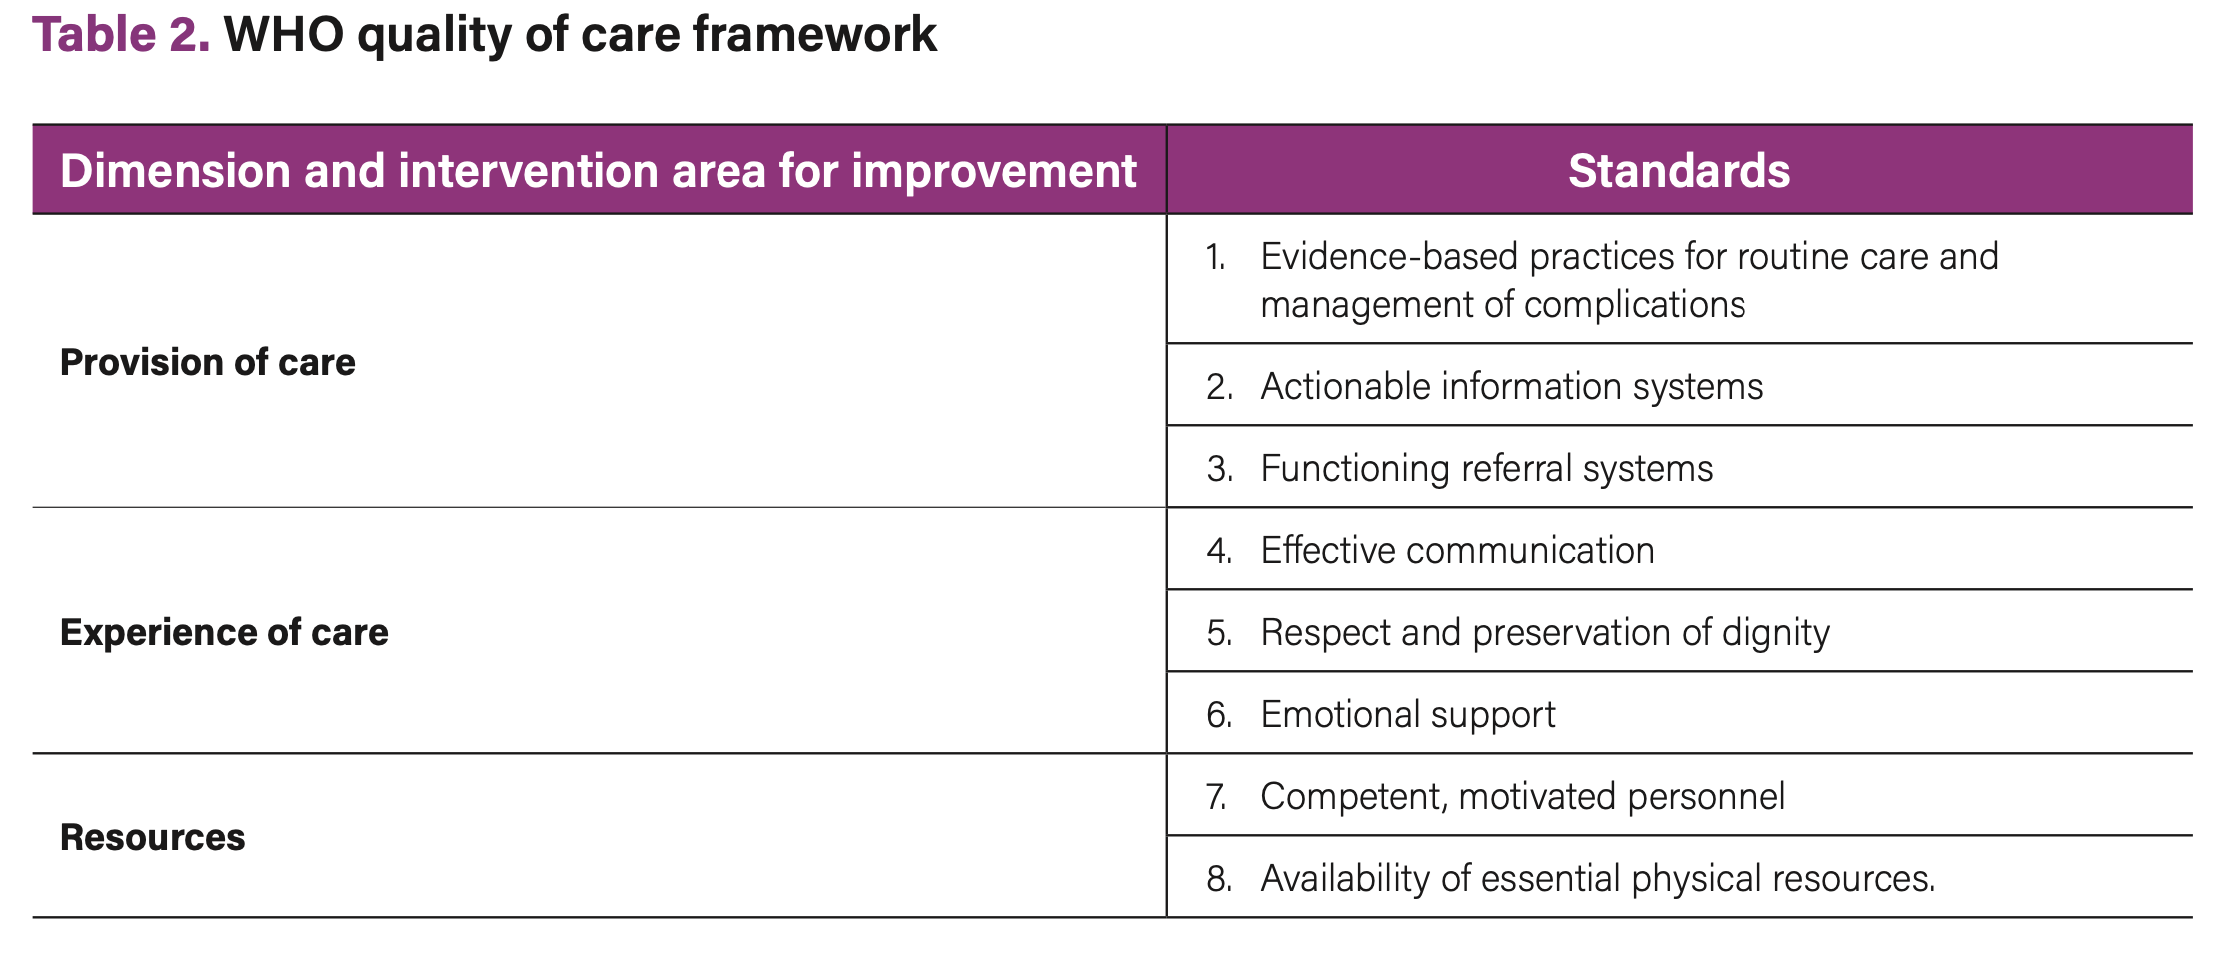 Table 2. WHO quality of care framework